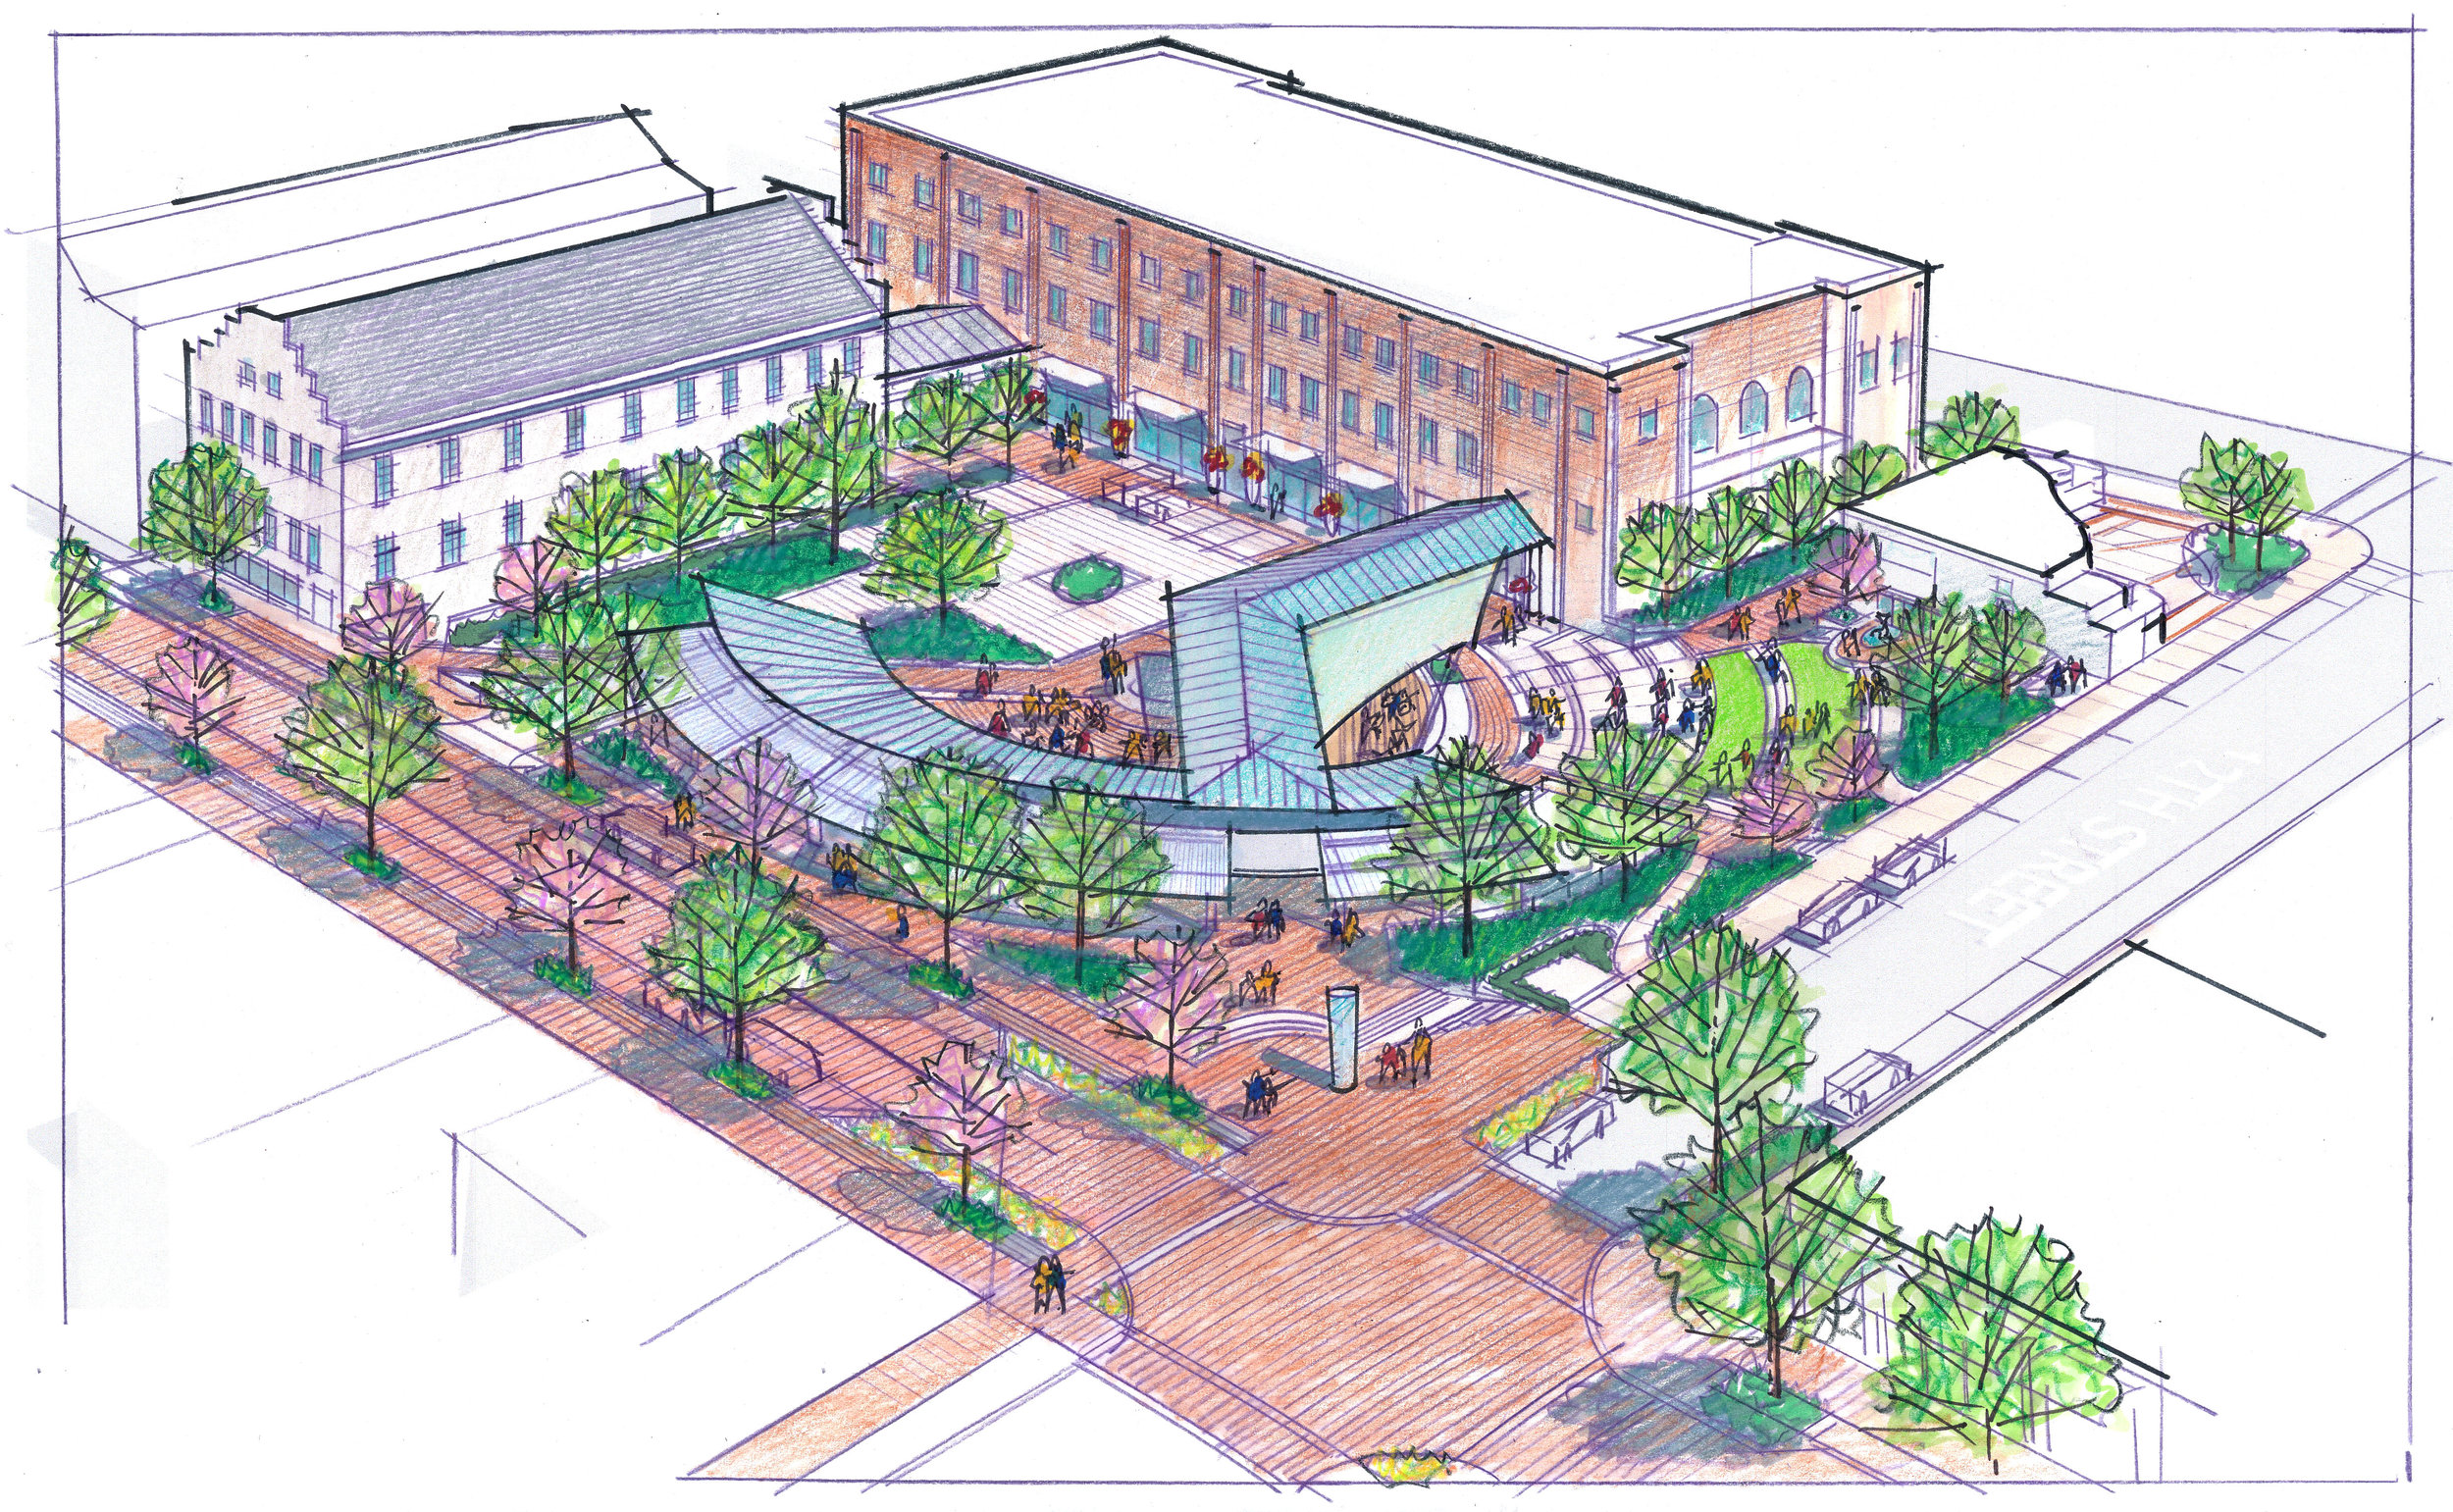 Lynchburg Downtown 2040 Plan - Amphitheater - Community Planning by Hill Studio